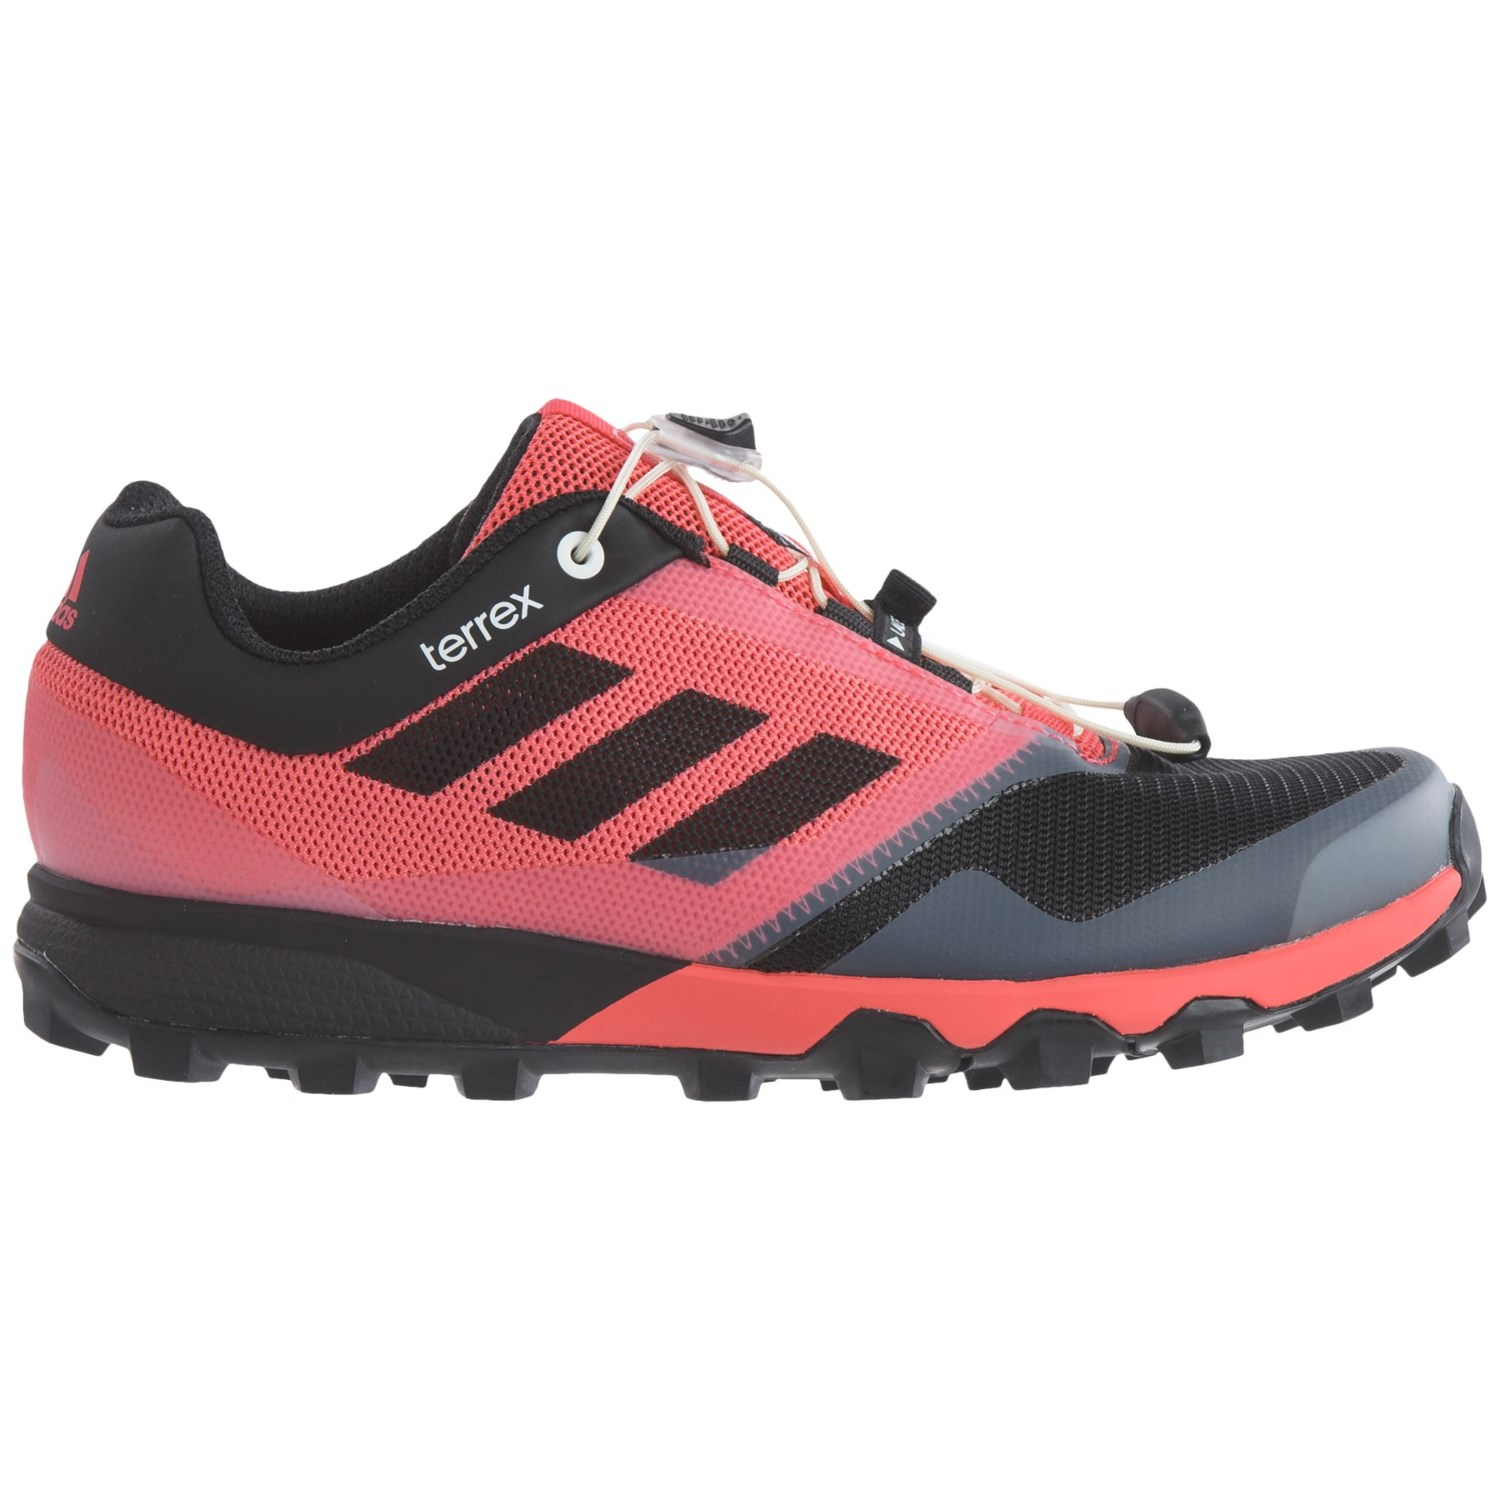 adidas Terrex Trailmaker Trail Running Shoes (For Women) - Save 47% 81ecfb609f41